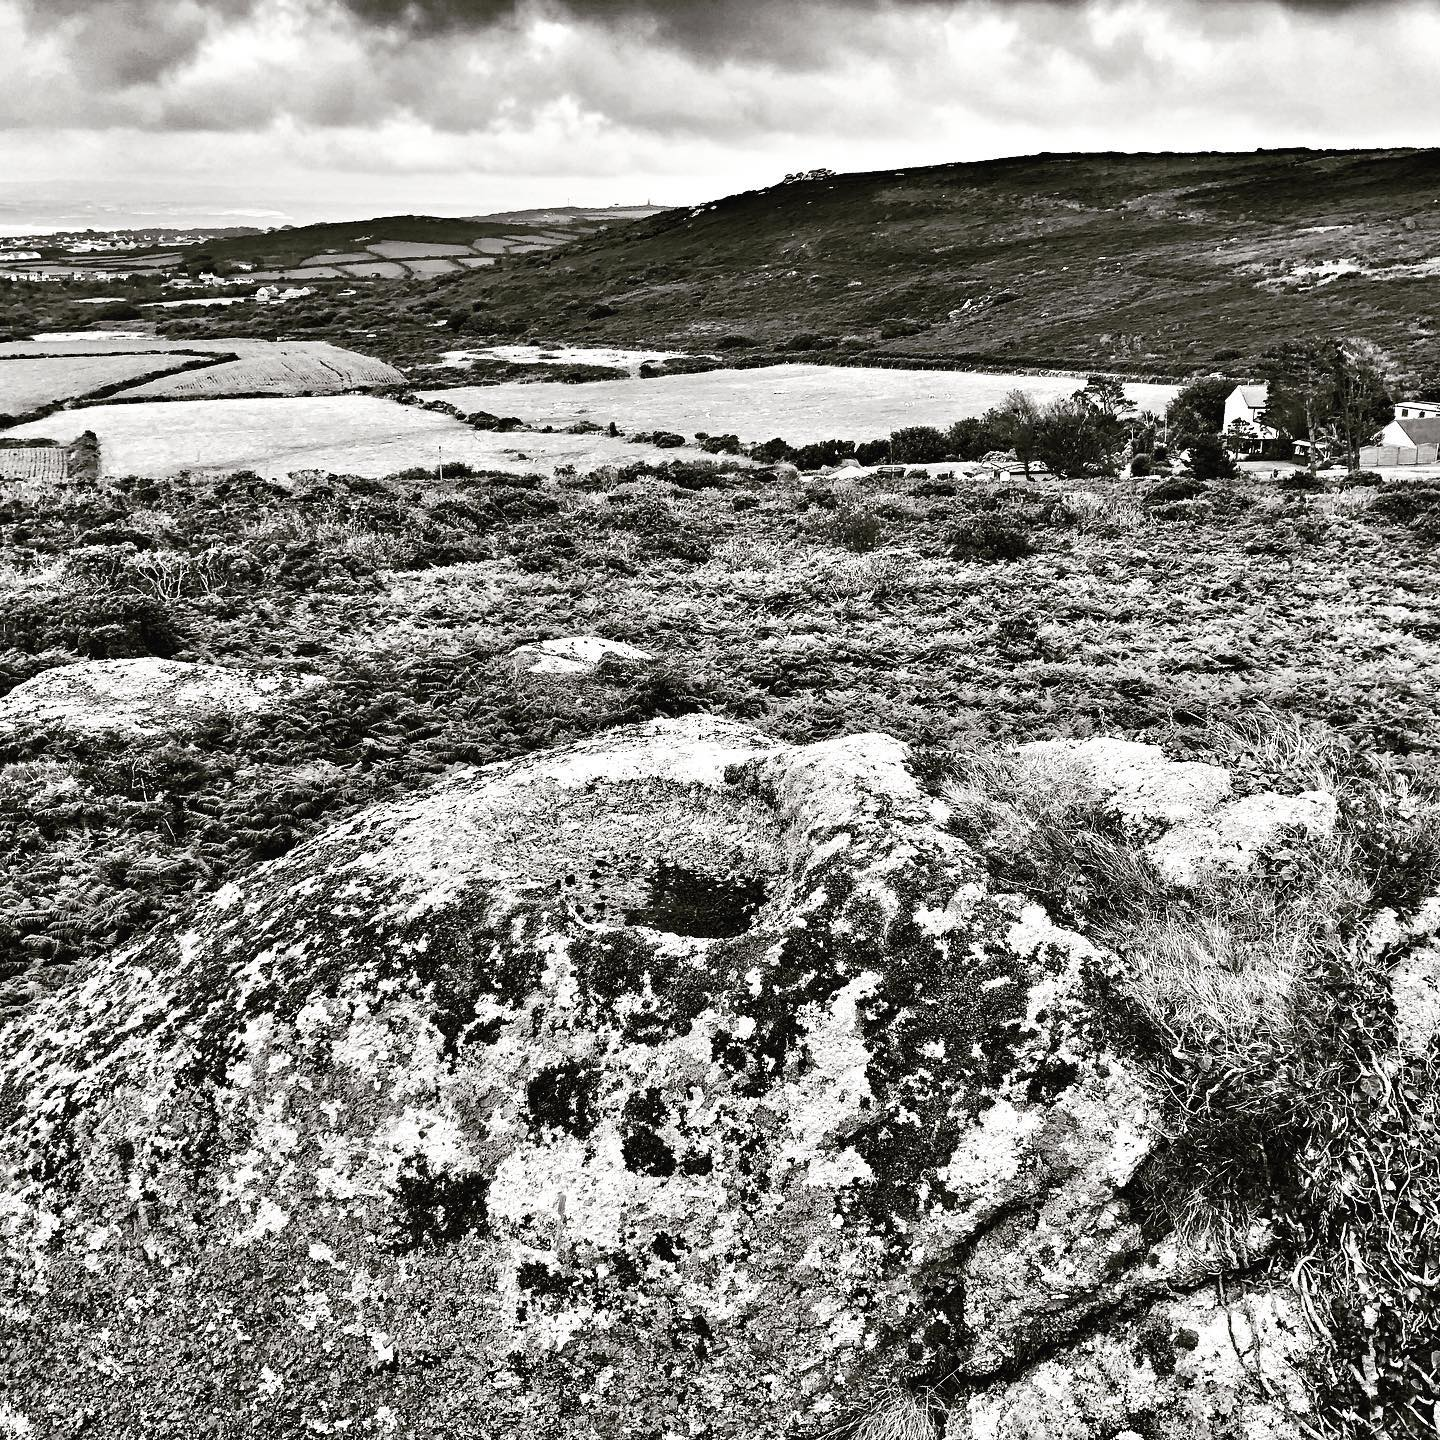 solutions basin travalgen hill. large bolder with basin some 80cm in diameter. the silhouette of rosewall hills's stone tors in the background. #water #ceremony #ceremonial #sacred #solutionsbasin #basin #archaeology  #stonefeature #ancestors #ancientknowledge #travalgen #rosewallhill